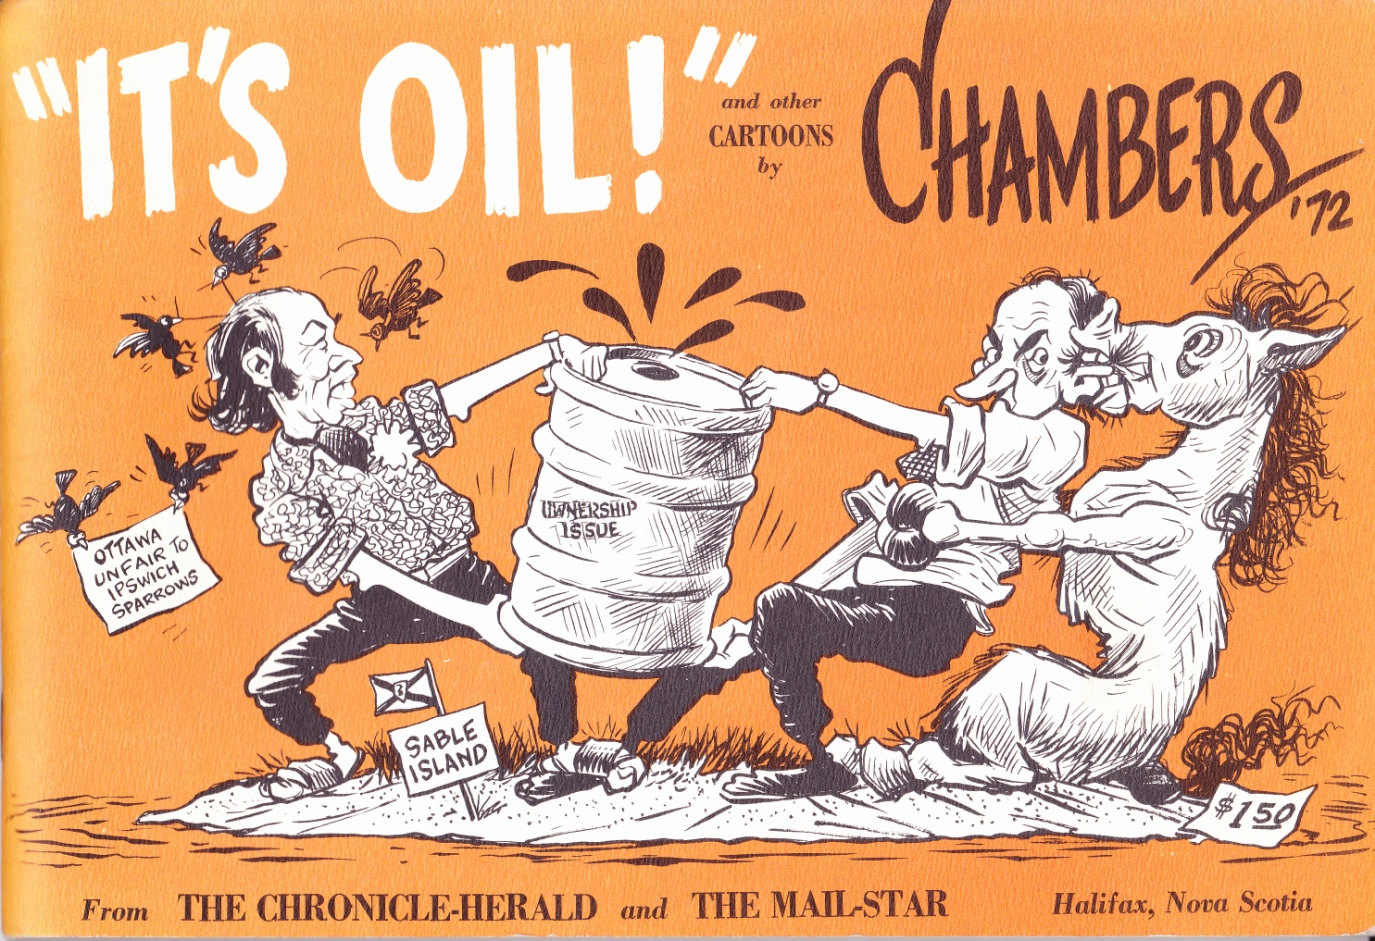 C:\Users\Robert\Documents\CARTOONING ILLUSTRATION ANIMATION\IMAGE BY CARTOONIST\C\CHAMBERS Robert, It's Oil by Chambers, 1972.jpg